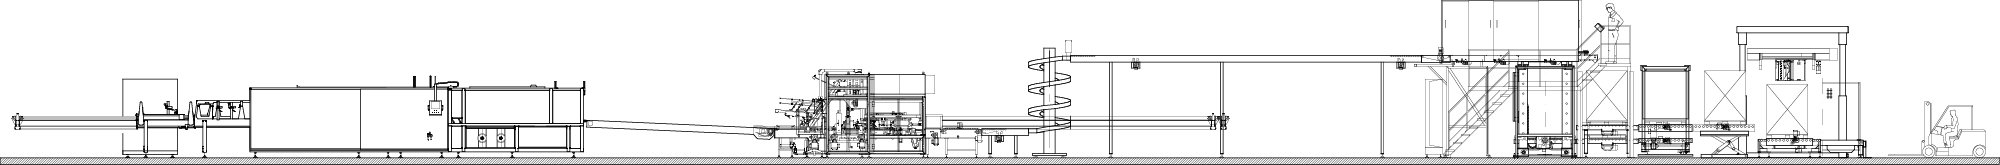 Bottles line layout section - Mariani Srl